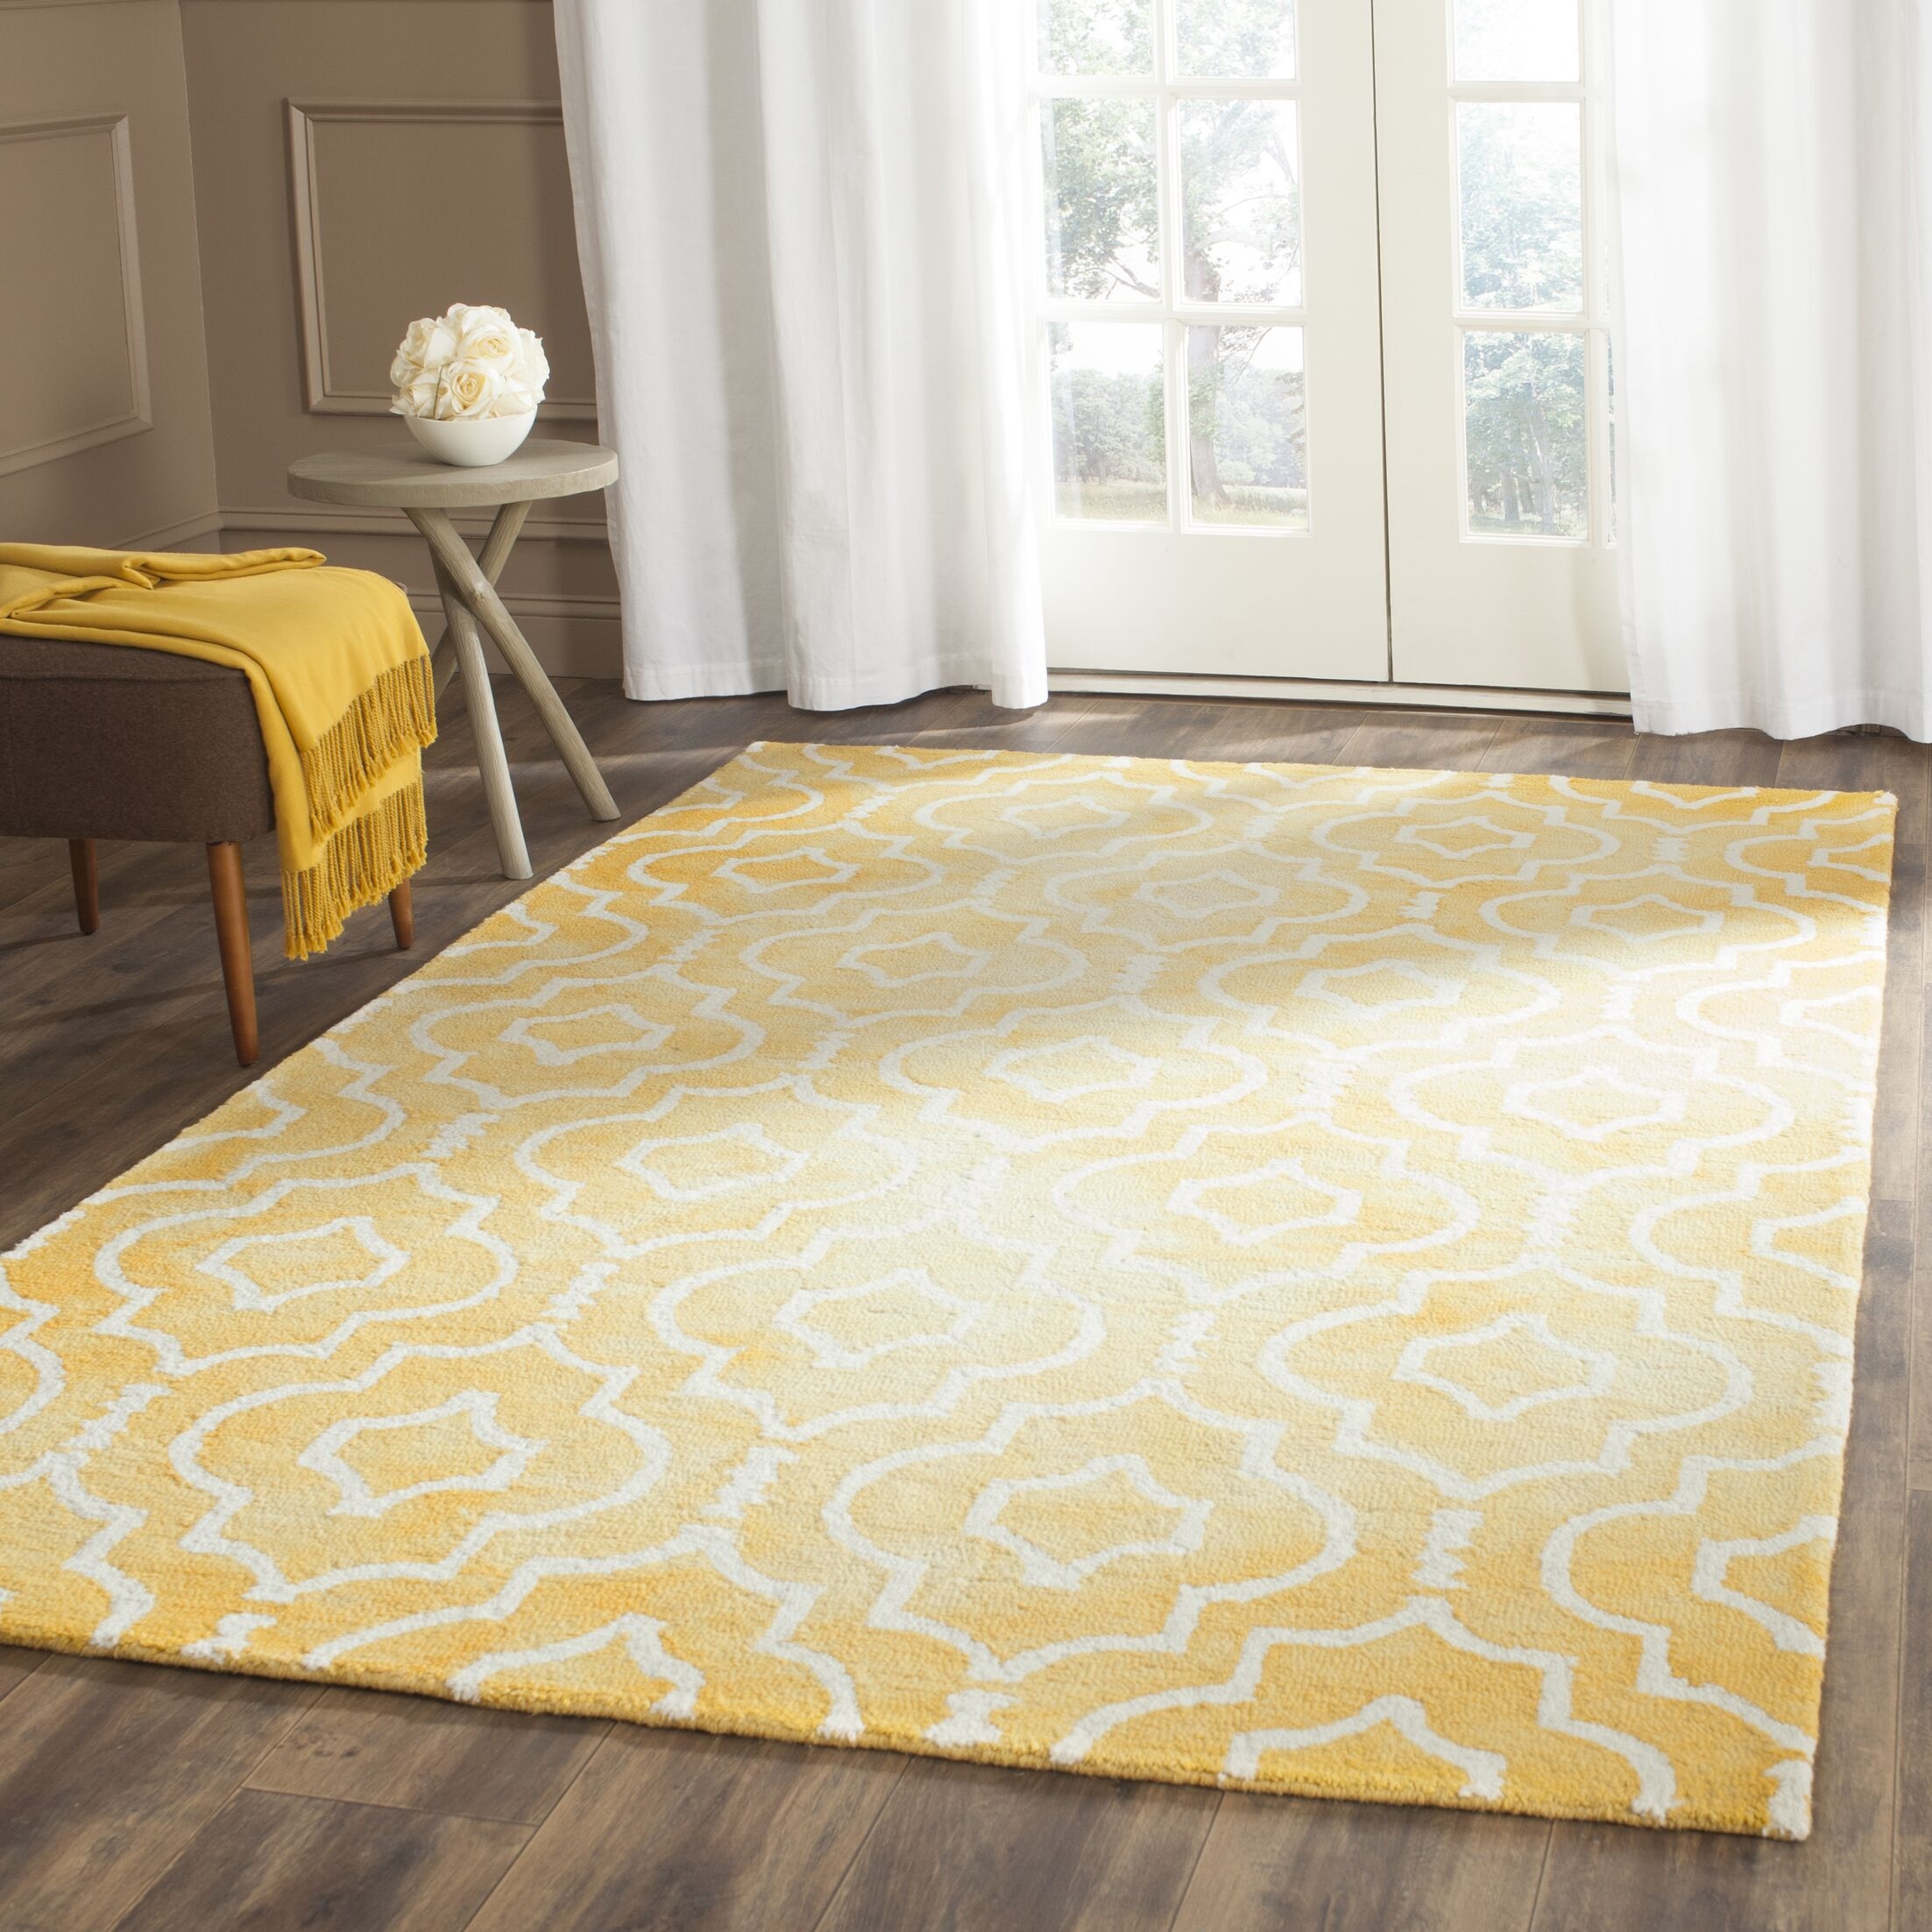 Hand-Tufted Gold/Ivory Area Rug Rug Size: Runner 2'3